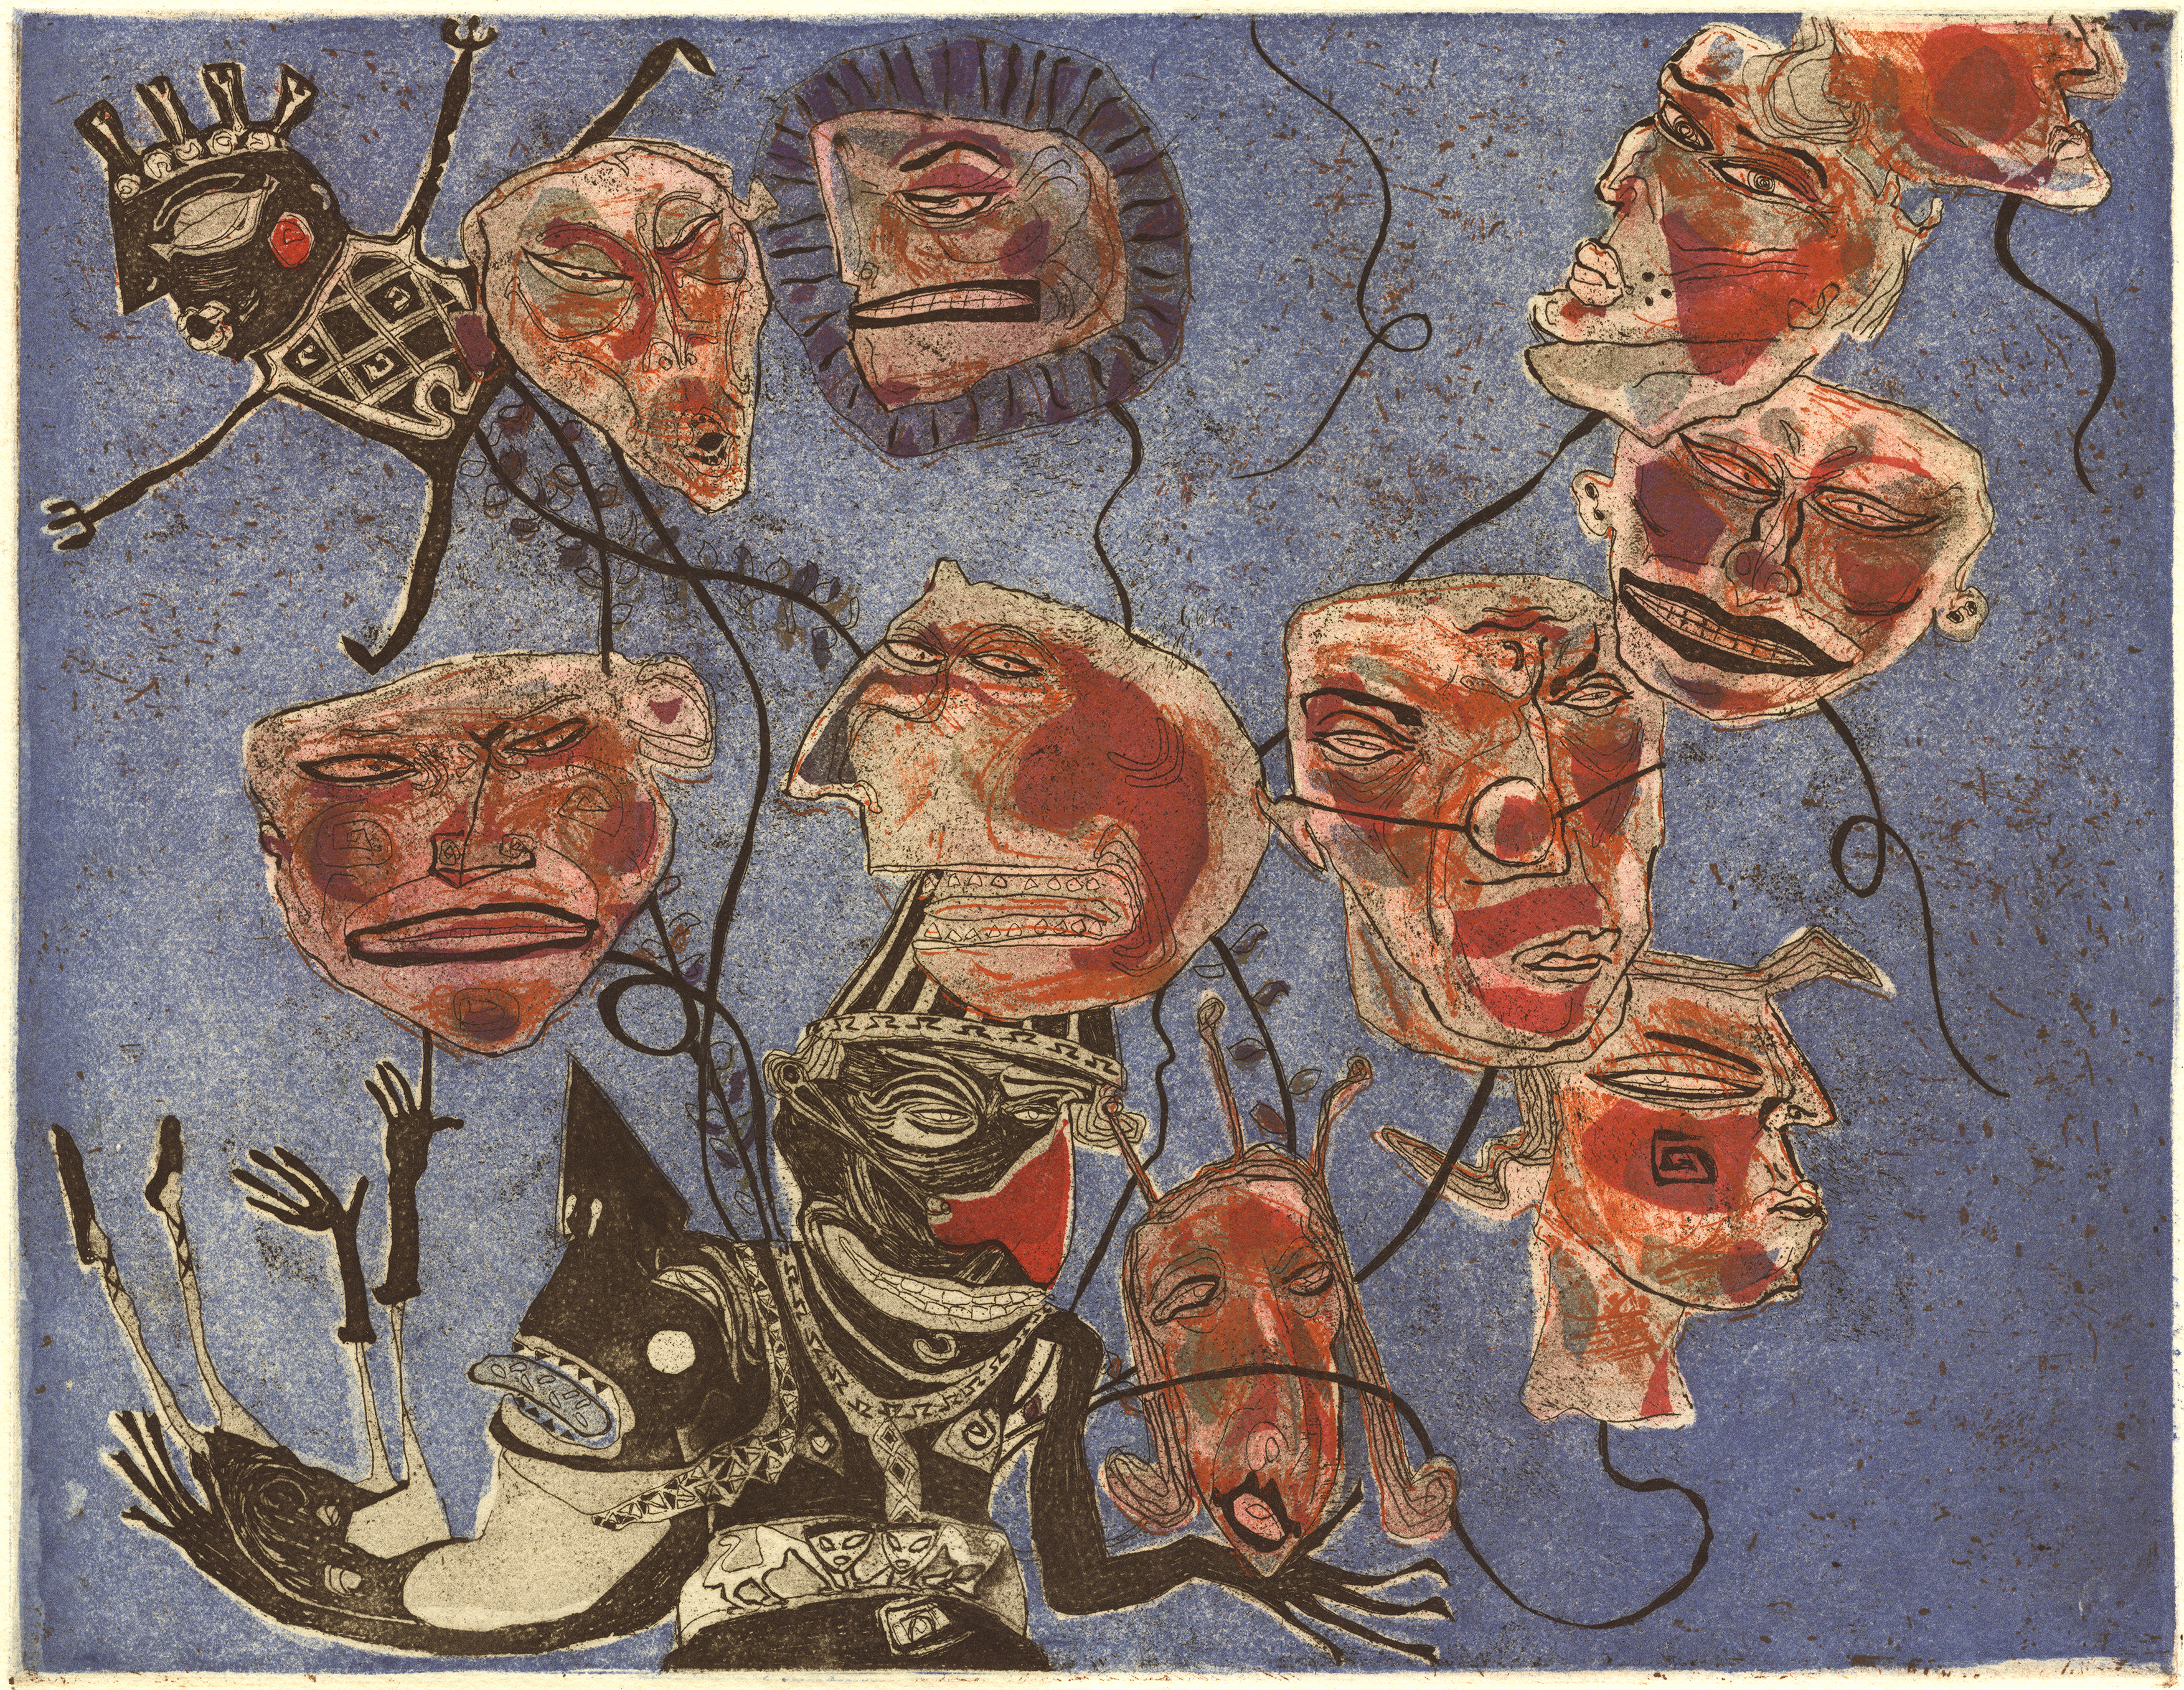 A small etching in black, blues and a range of reds and oranges showing a playful yet sinister interpretation of a two characters. One as the seller of balloons, seen as heads on strings and the other as the accomplice about to pop one of the balloon heads.